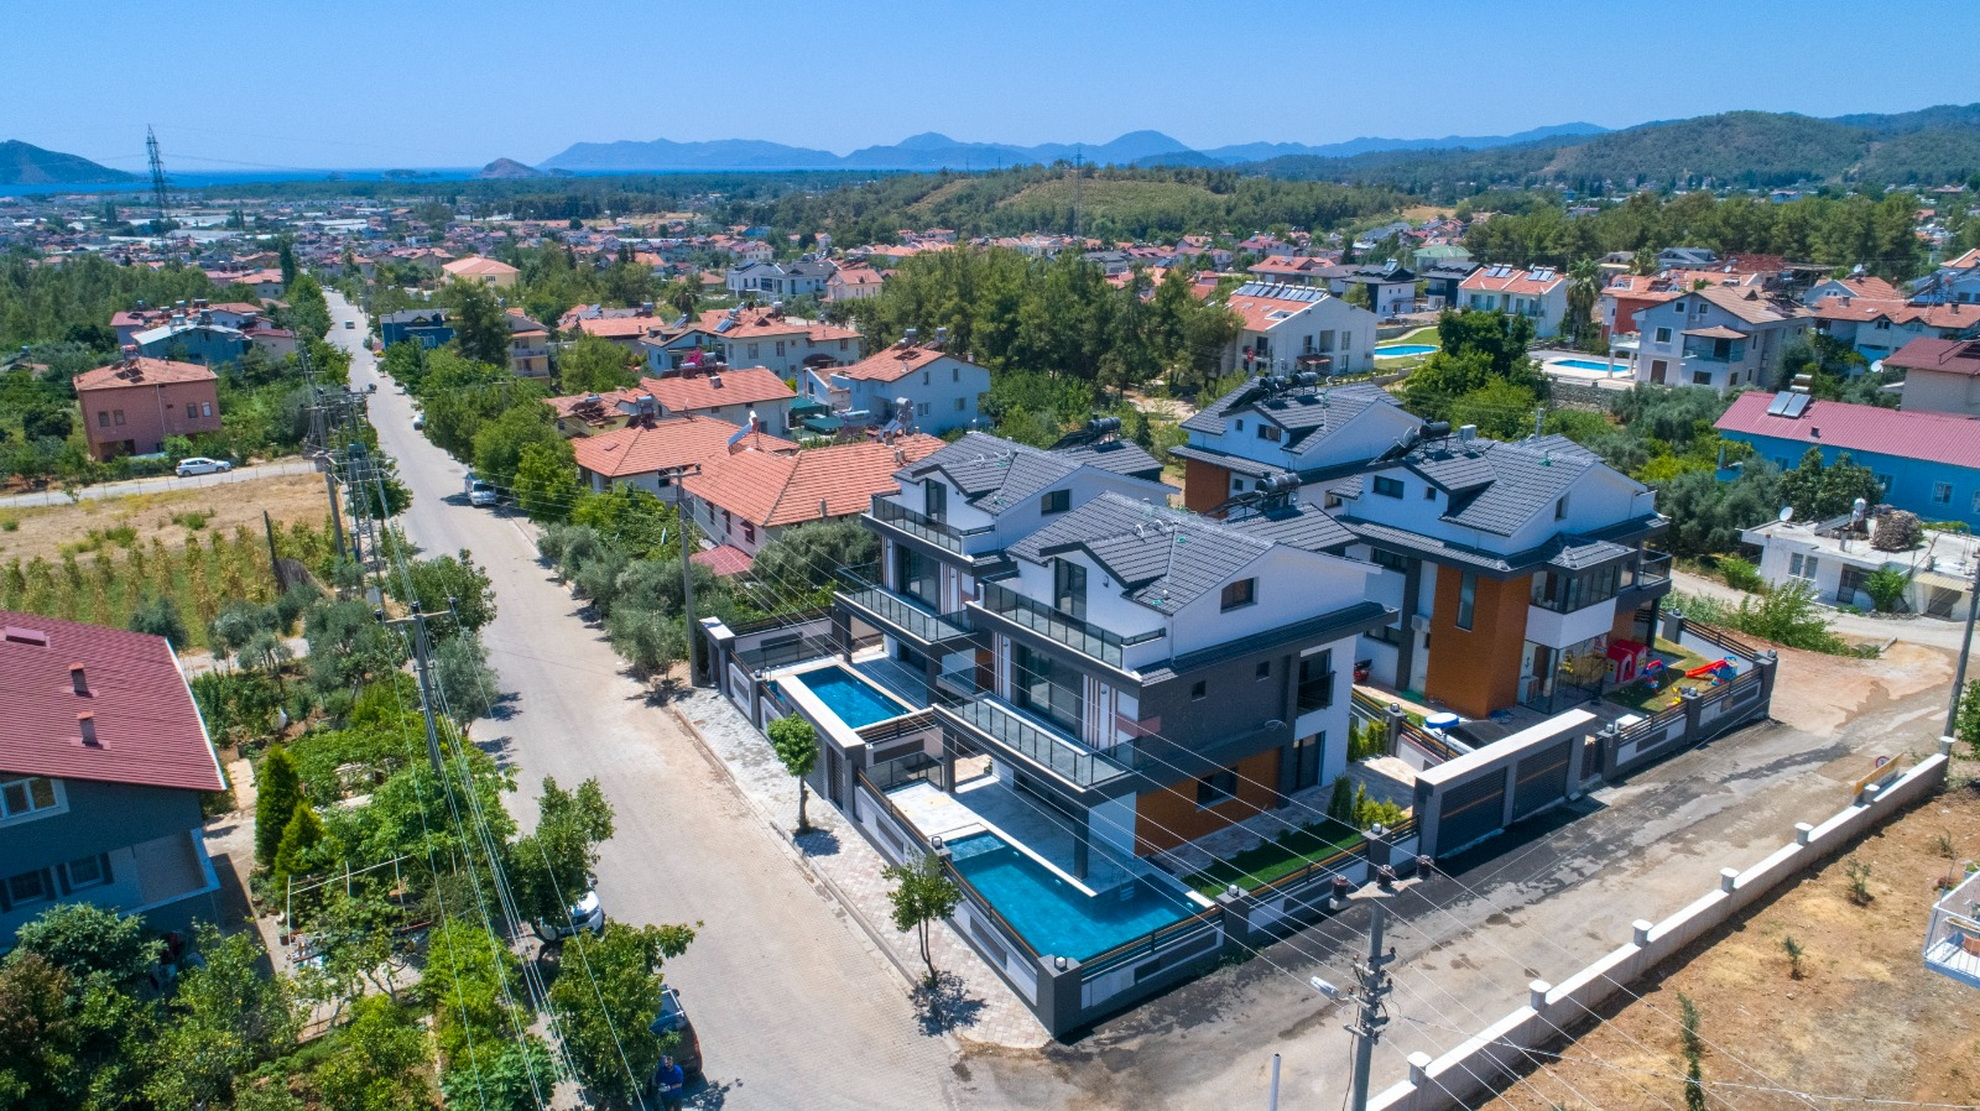 5 Bedroom Luxury Villas with Private Pool For Sale